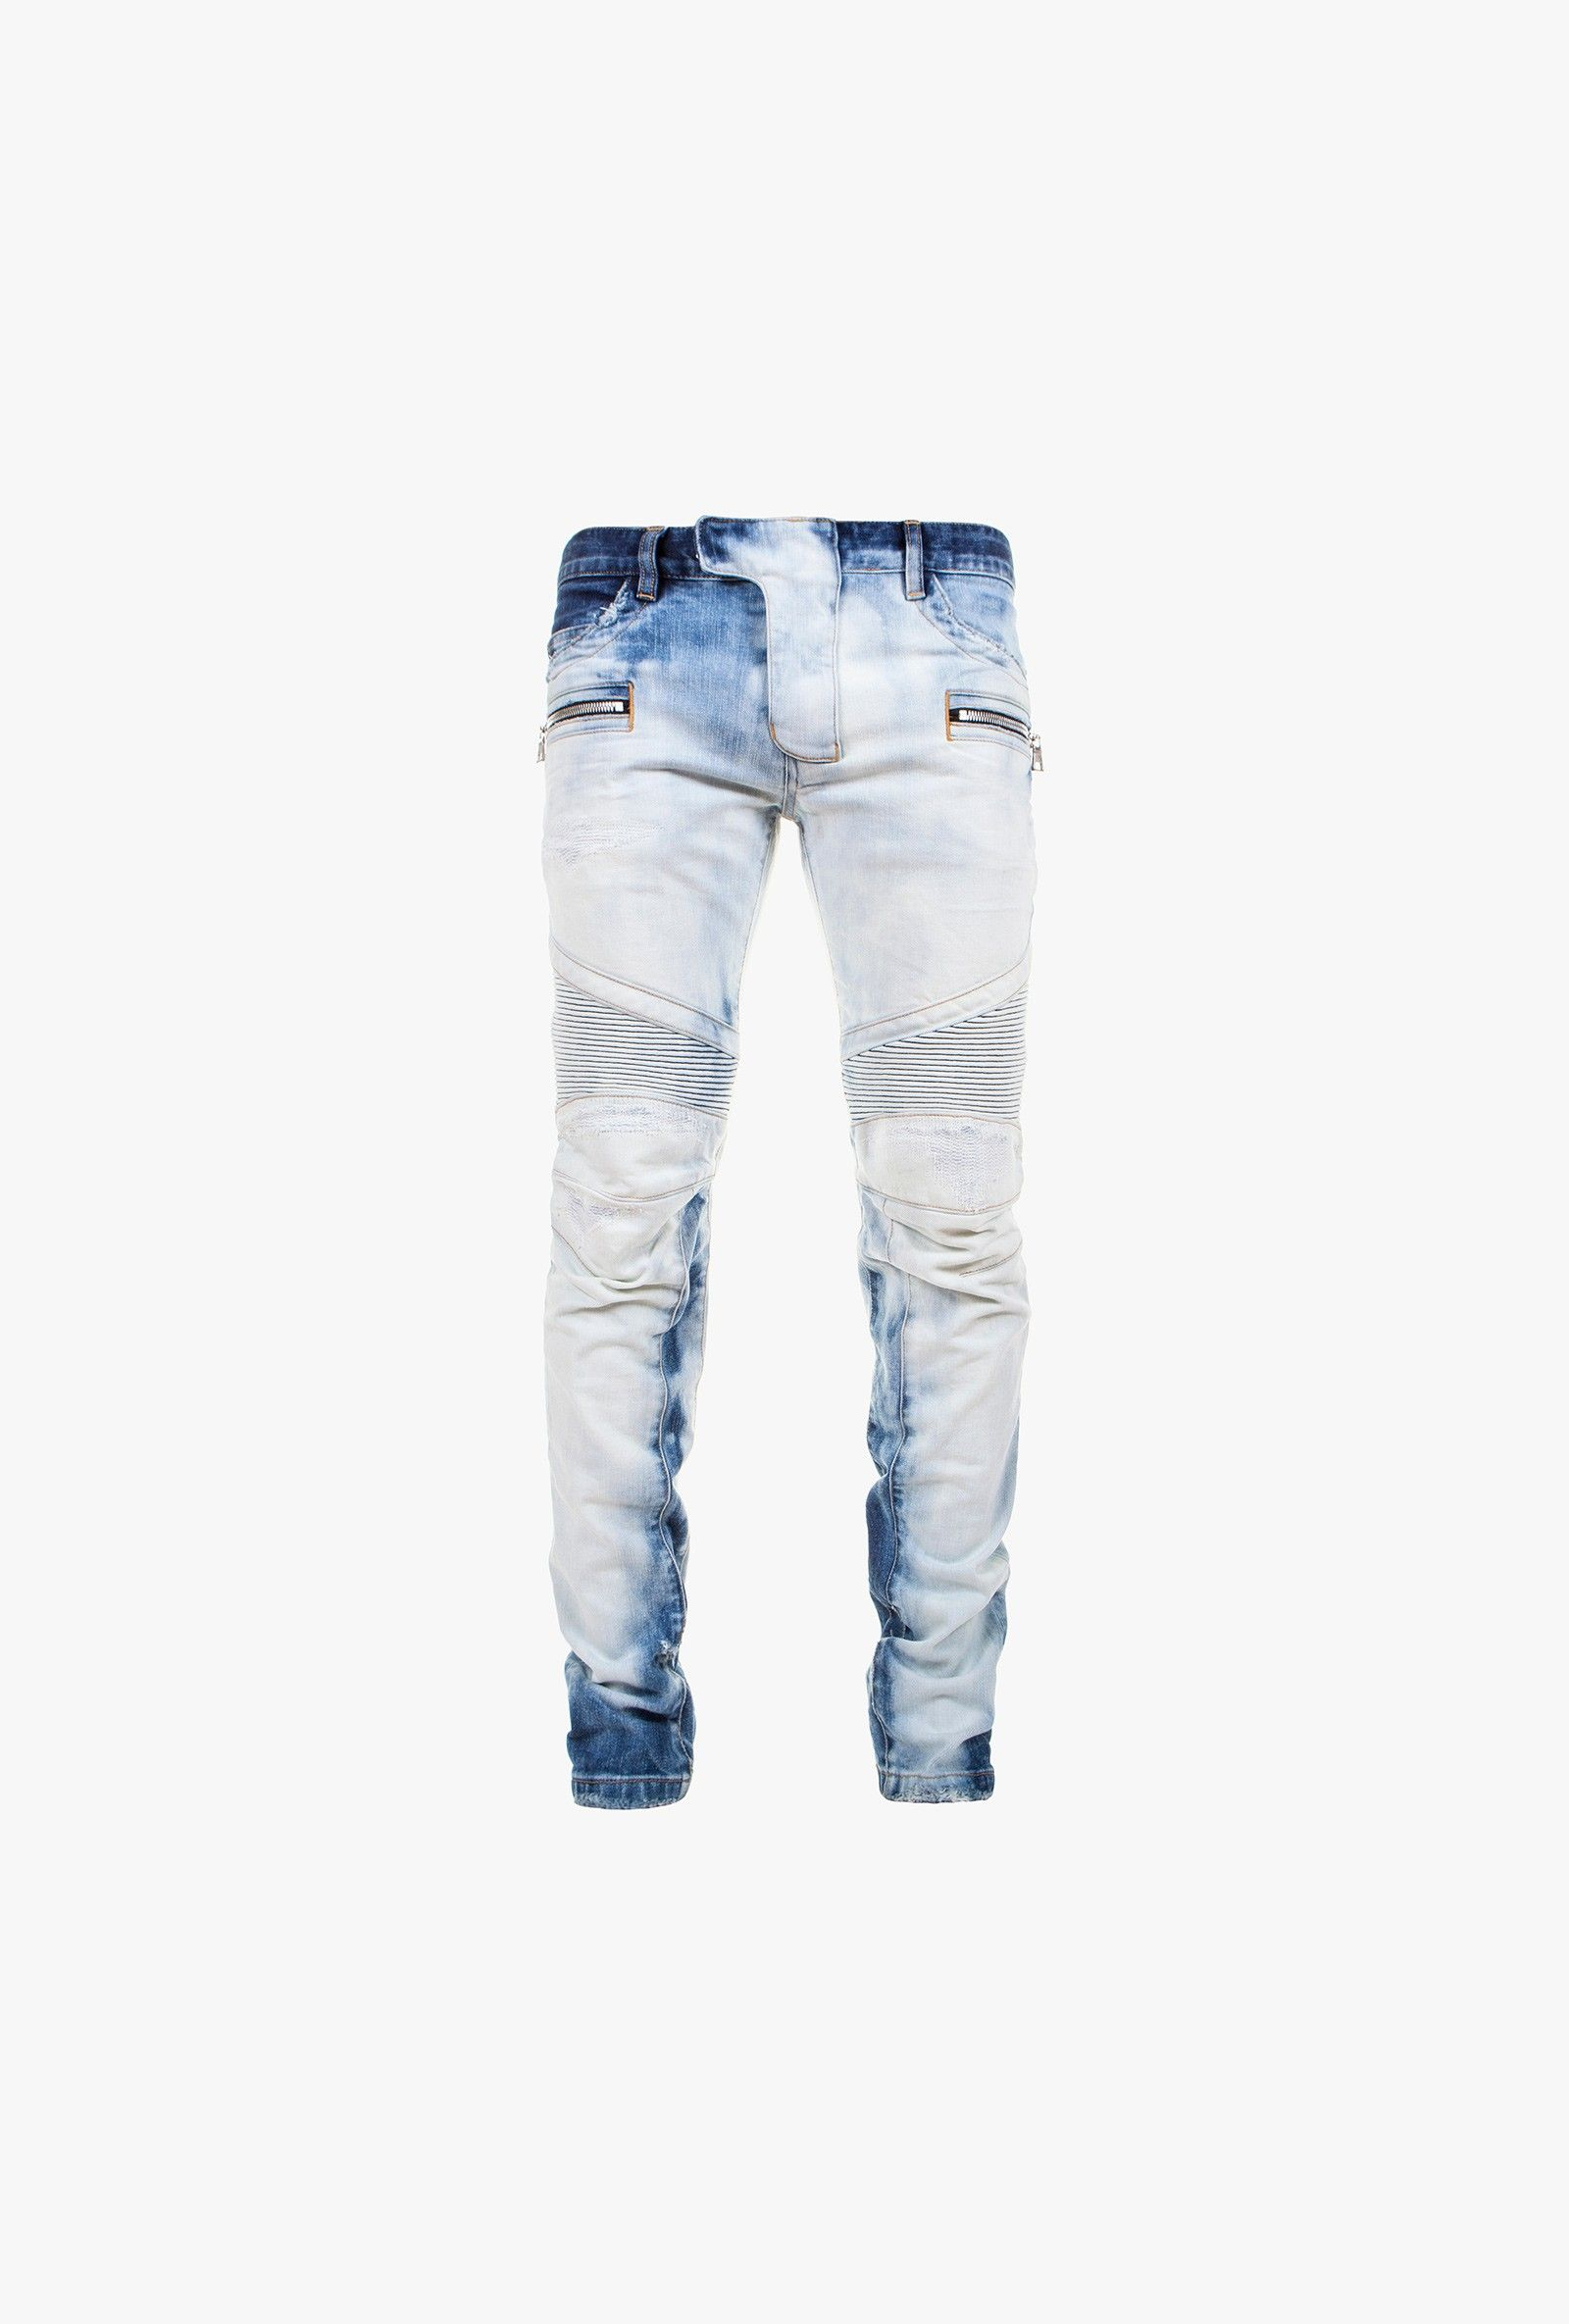 c4e53e93 Balmain - Slim-fit stretch bleached cotton biker jeans - Men's jeans ...